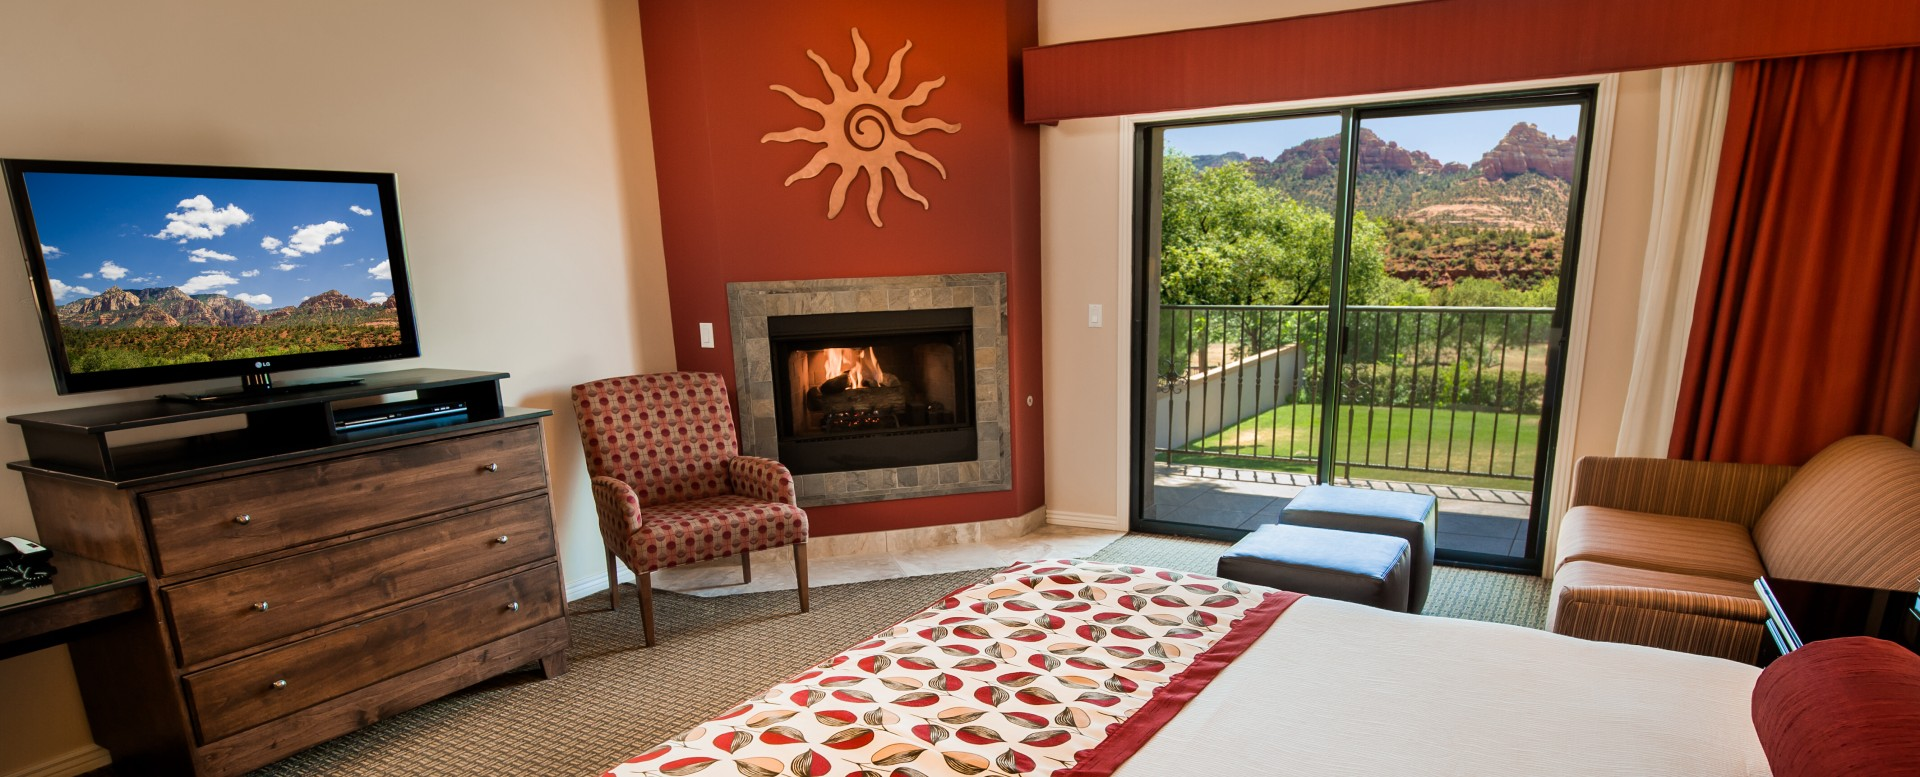 Best Western Plus Arroyo Roble Hotel - Guestroom with fireplace